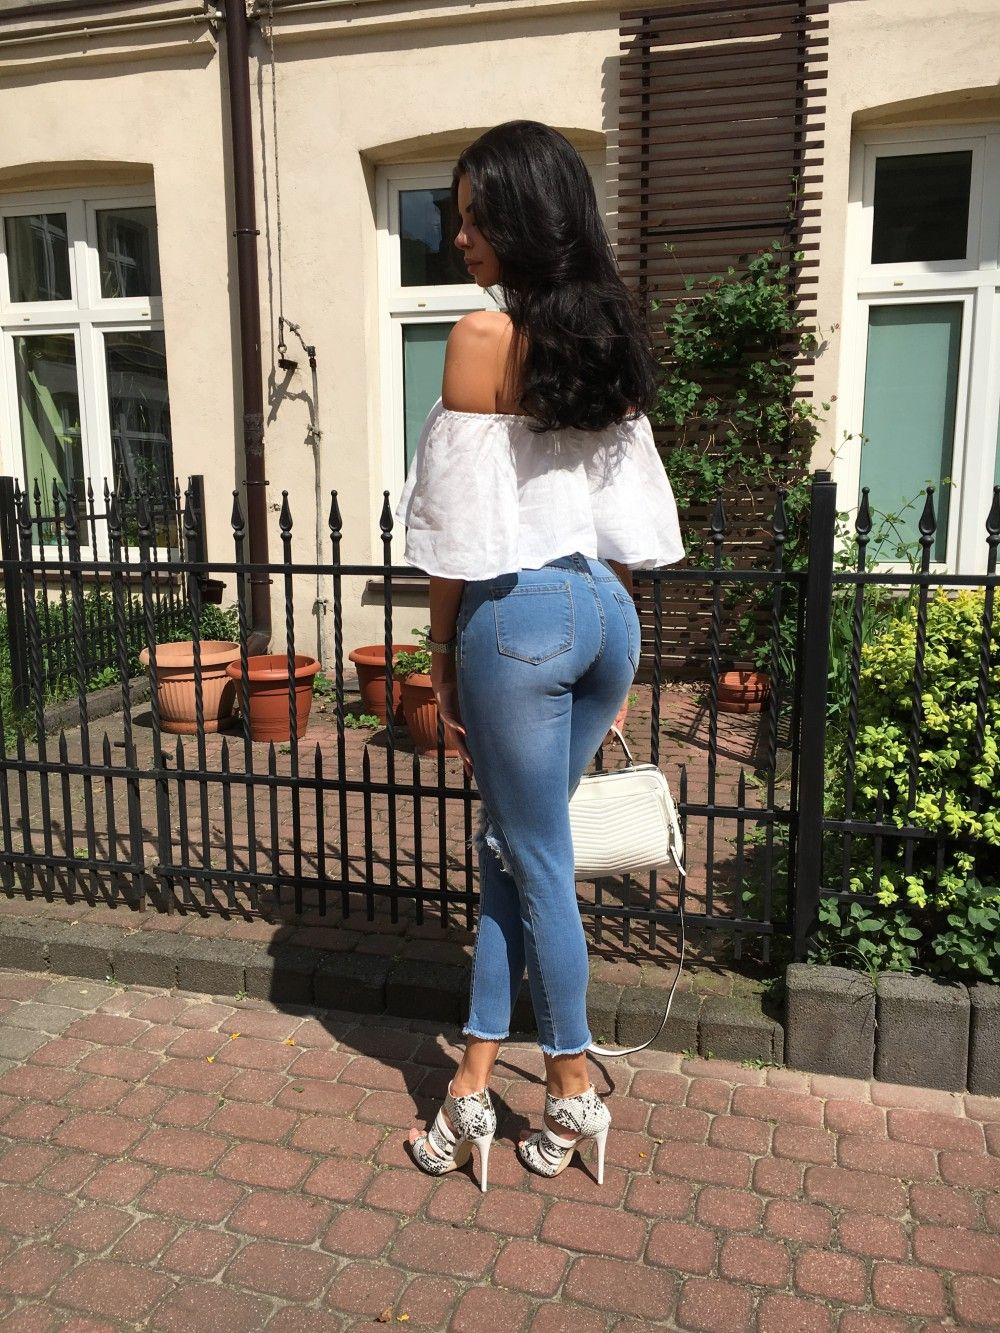 Dat Ass In Those Jeans